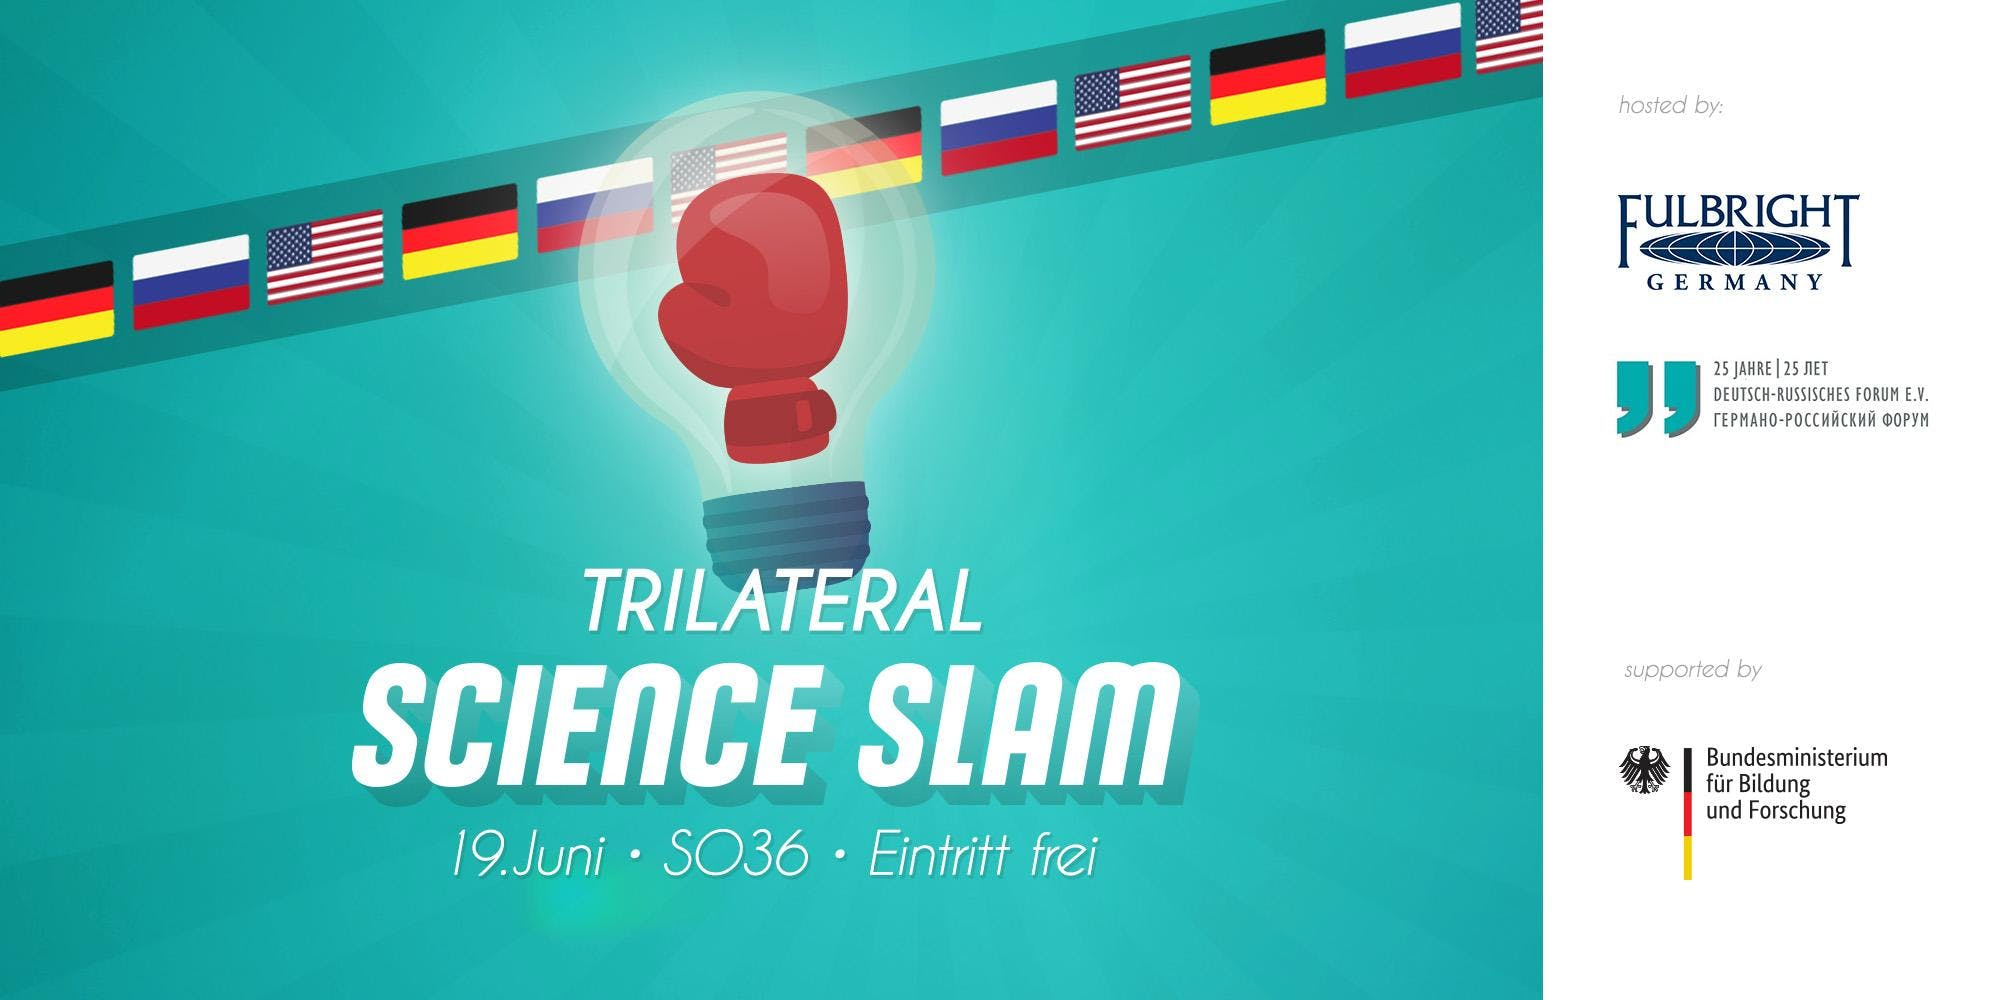 Trilateral Science Slam (German-Russia-USA)